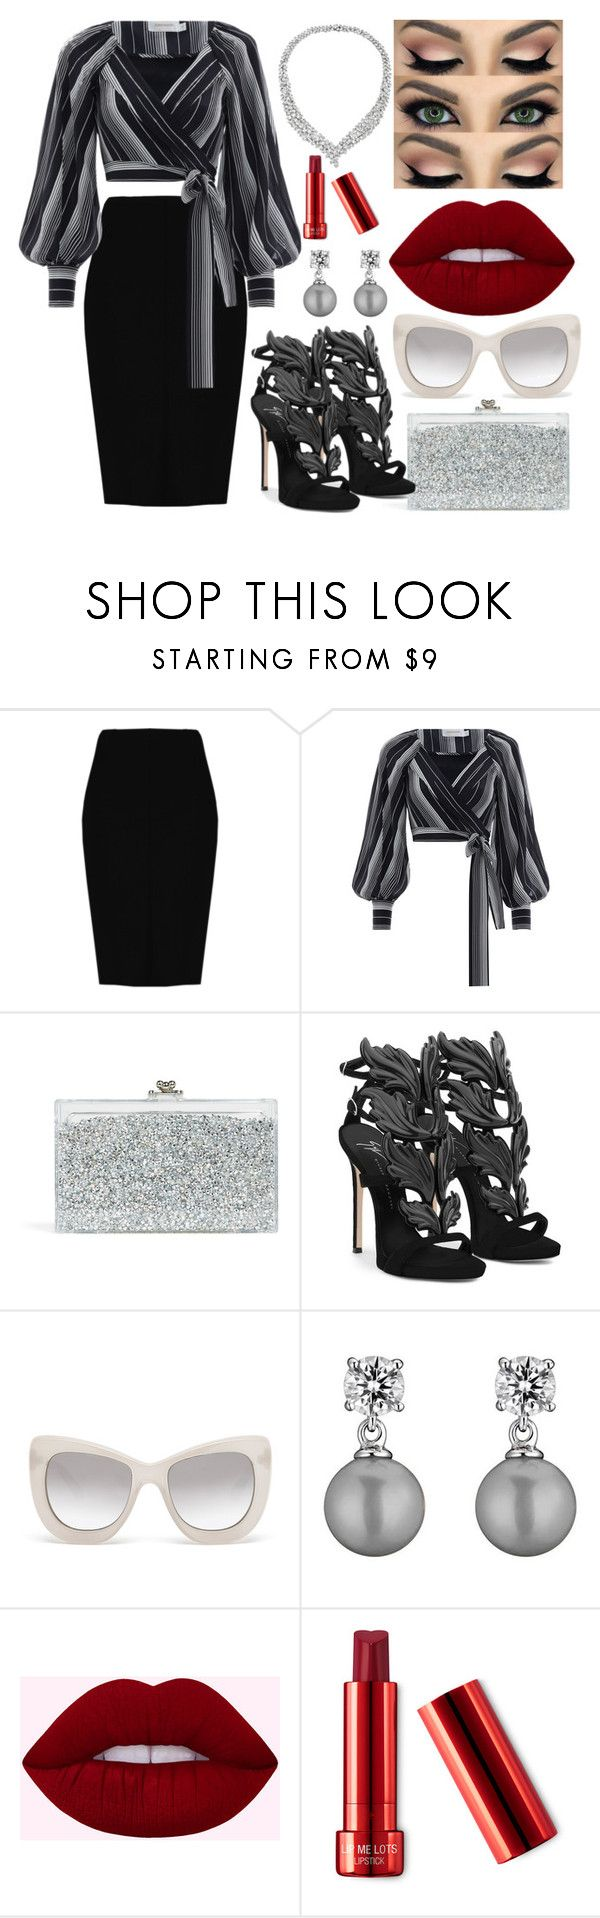 """Classy"" by chalotteleah on Polyvore featuring Boohoo, Zimmermann, Ashlyn'd, Giuseppe Zanotti, Le Specs Luxe and Collette Z"